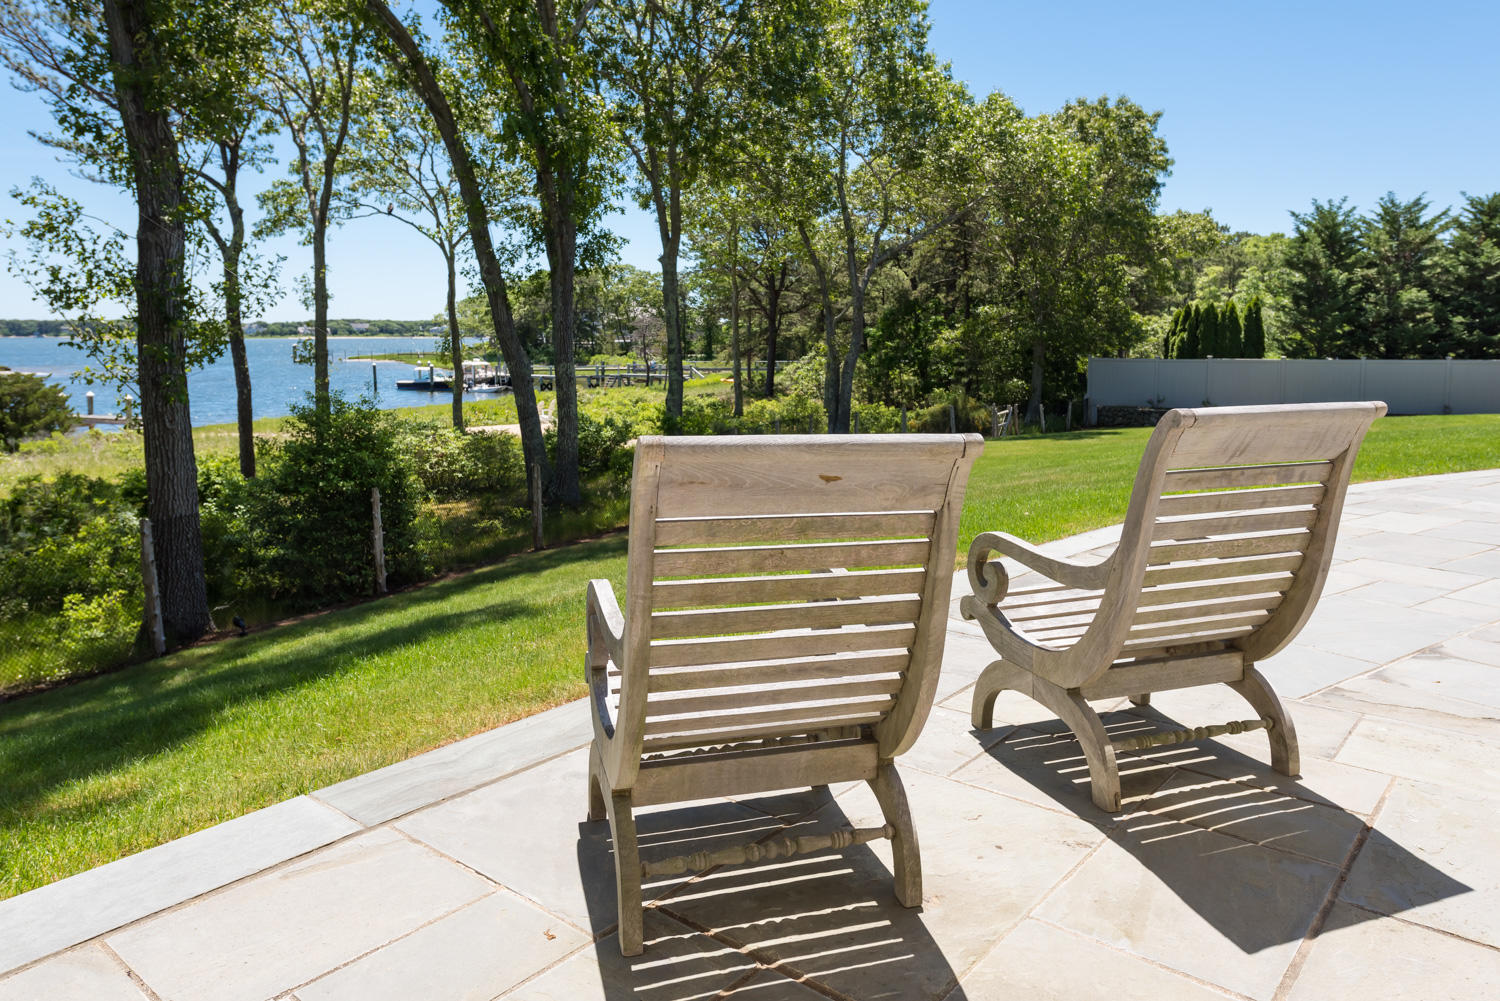 81 & 73 Oyster Way Osterville, MA 02655